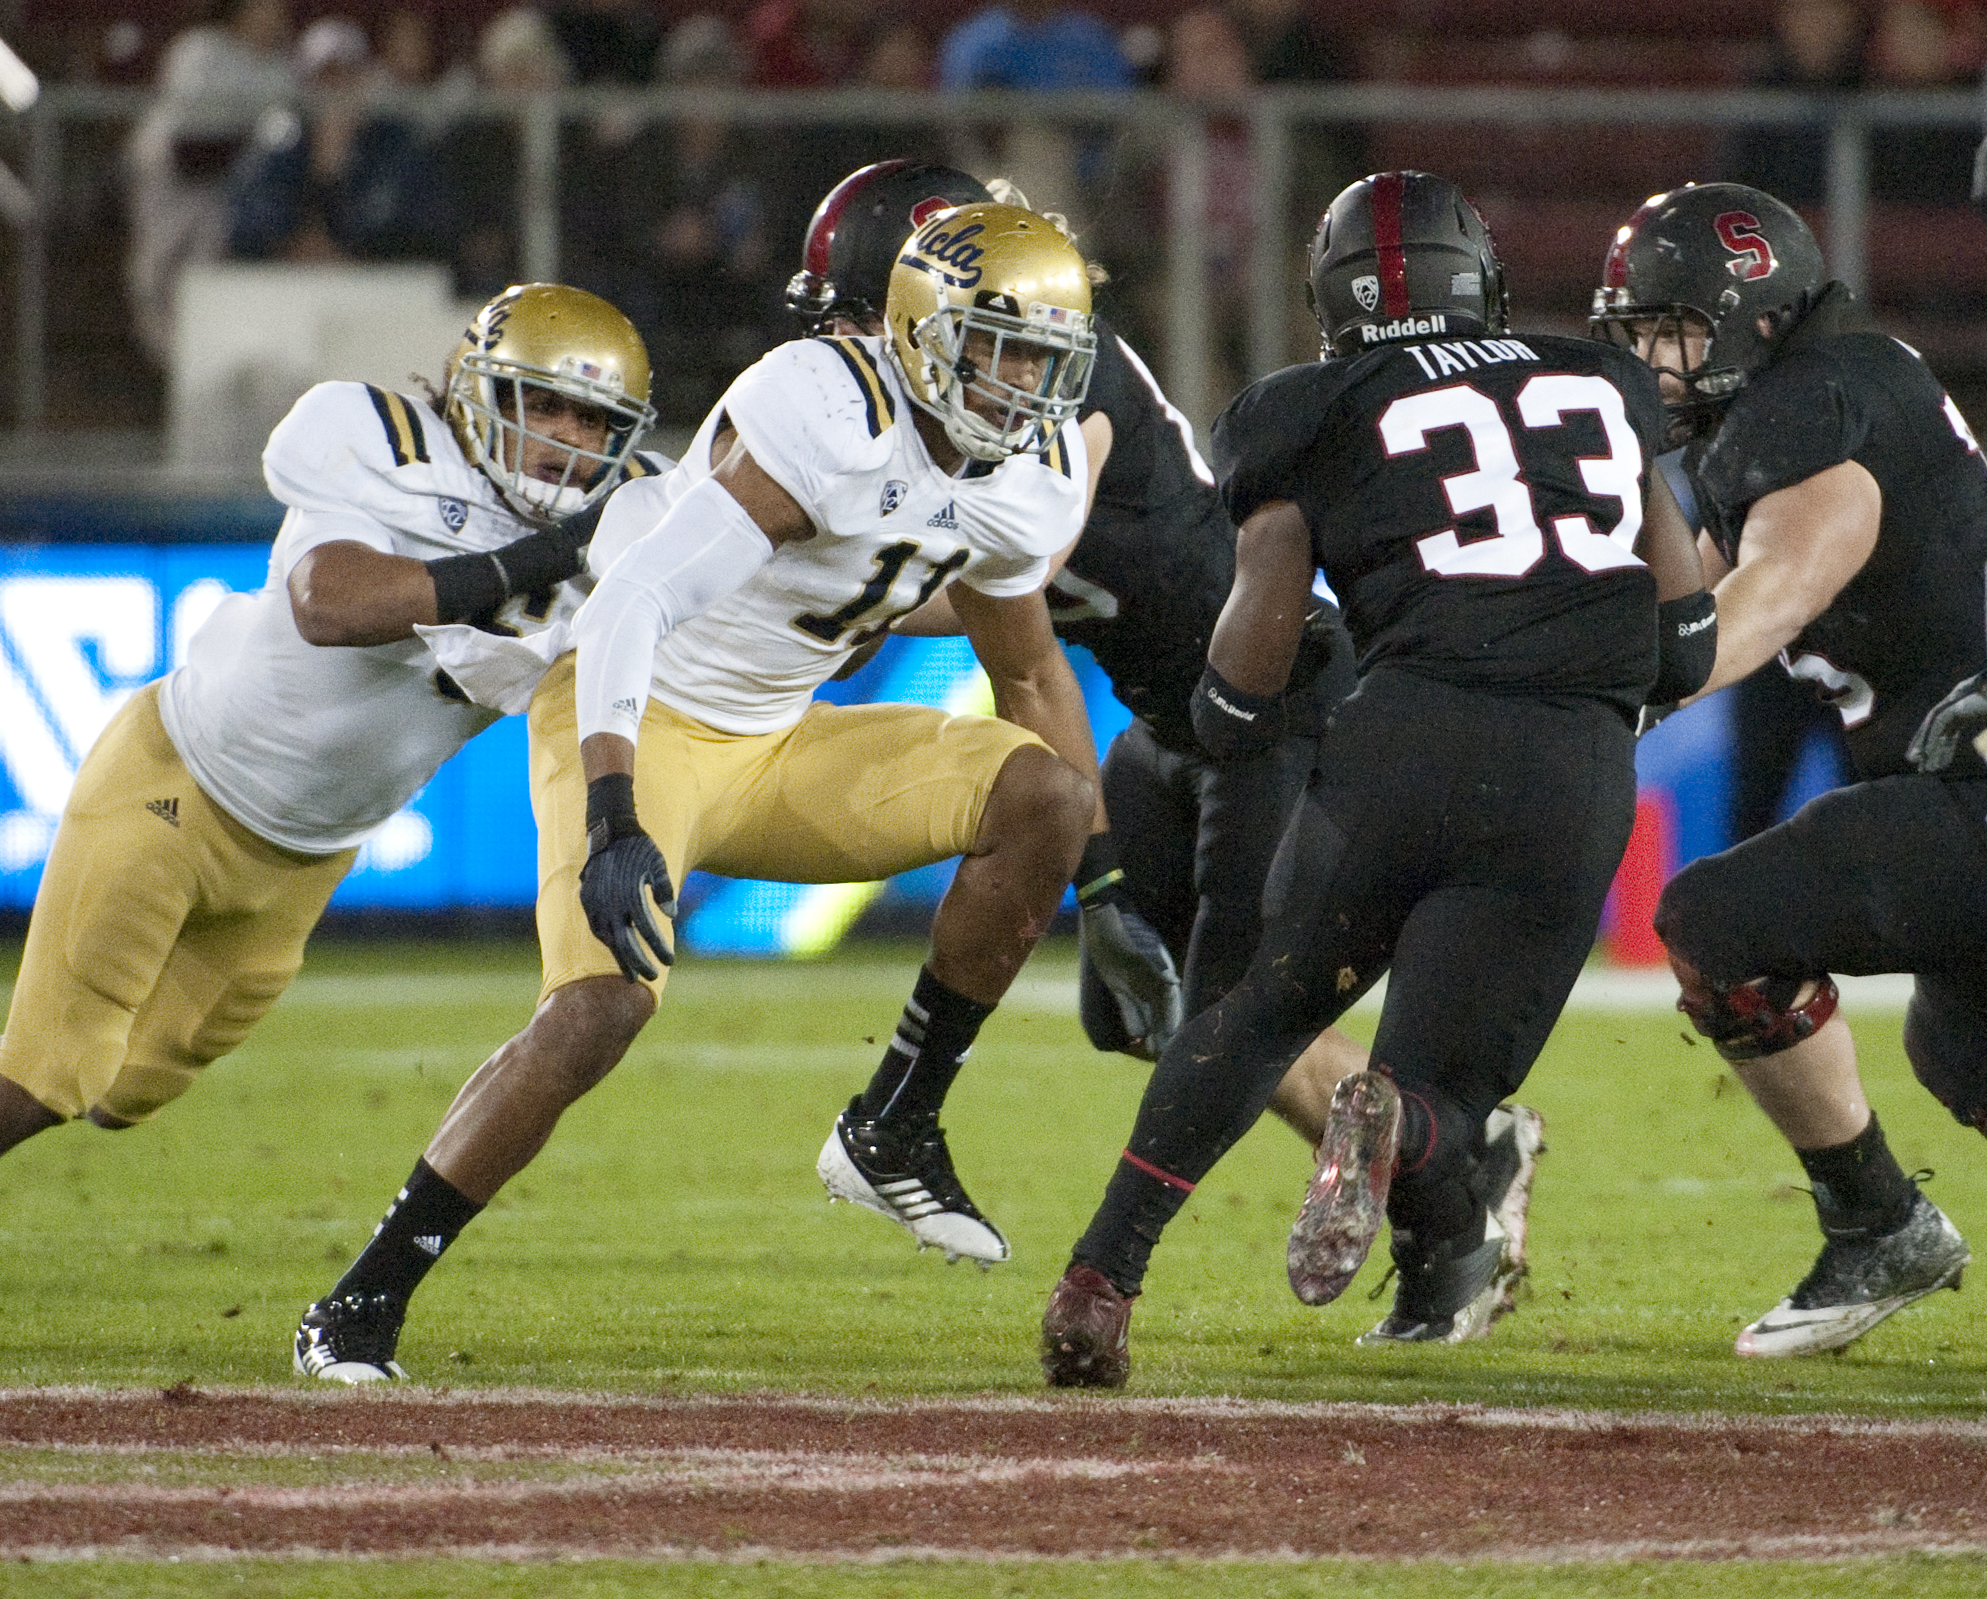 Junior outside linebacker Anthony Barr and the Bruins are coming back from a disappointing Pac-12 Championship loss to play in the Holiday Bowl later this month. The Bowl game will take place at Qualcomm Stadium in San Diego on Dec. 27, and UCLA will face Baylor.